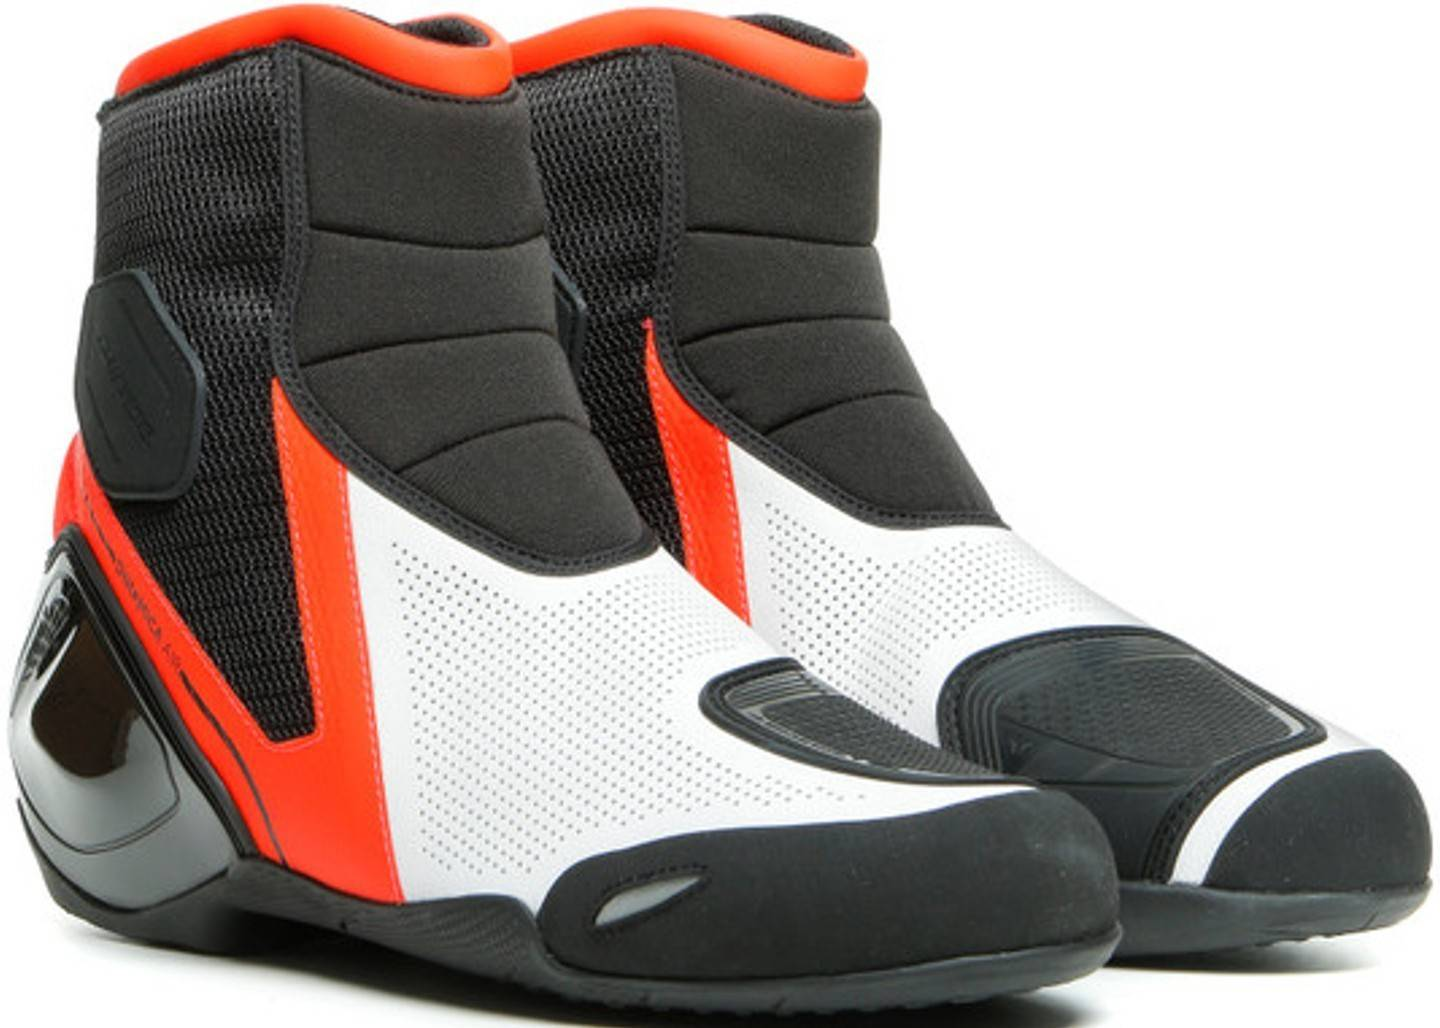 Dainese Dinamica Air Motorcycle Shoes  - Size: 39